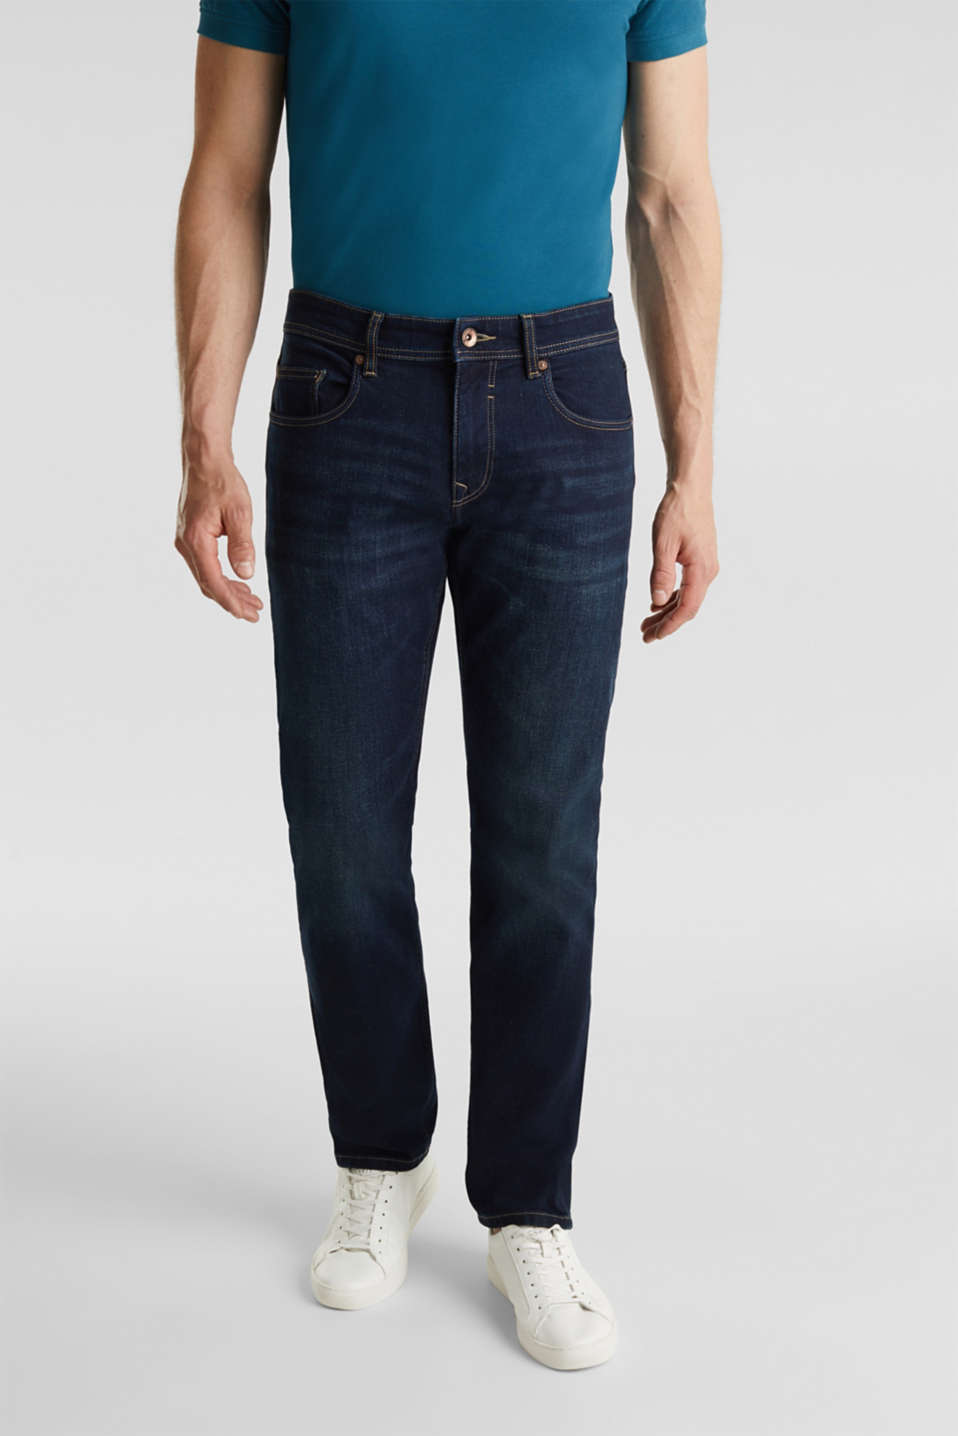 Esprit - Dark stretch jeans with organic cotton